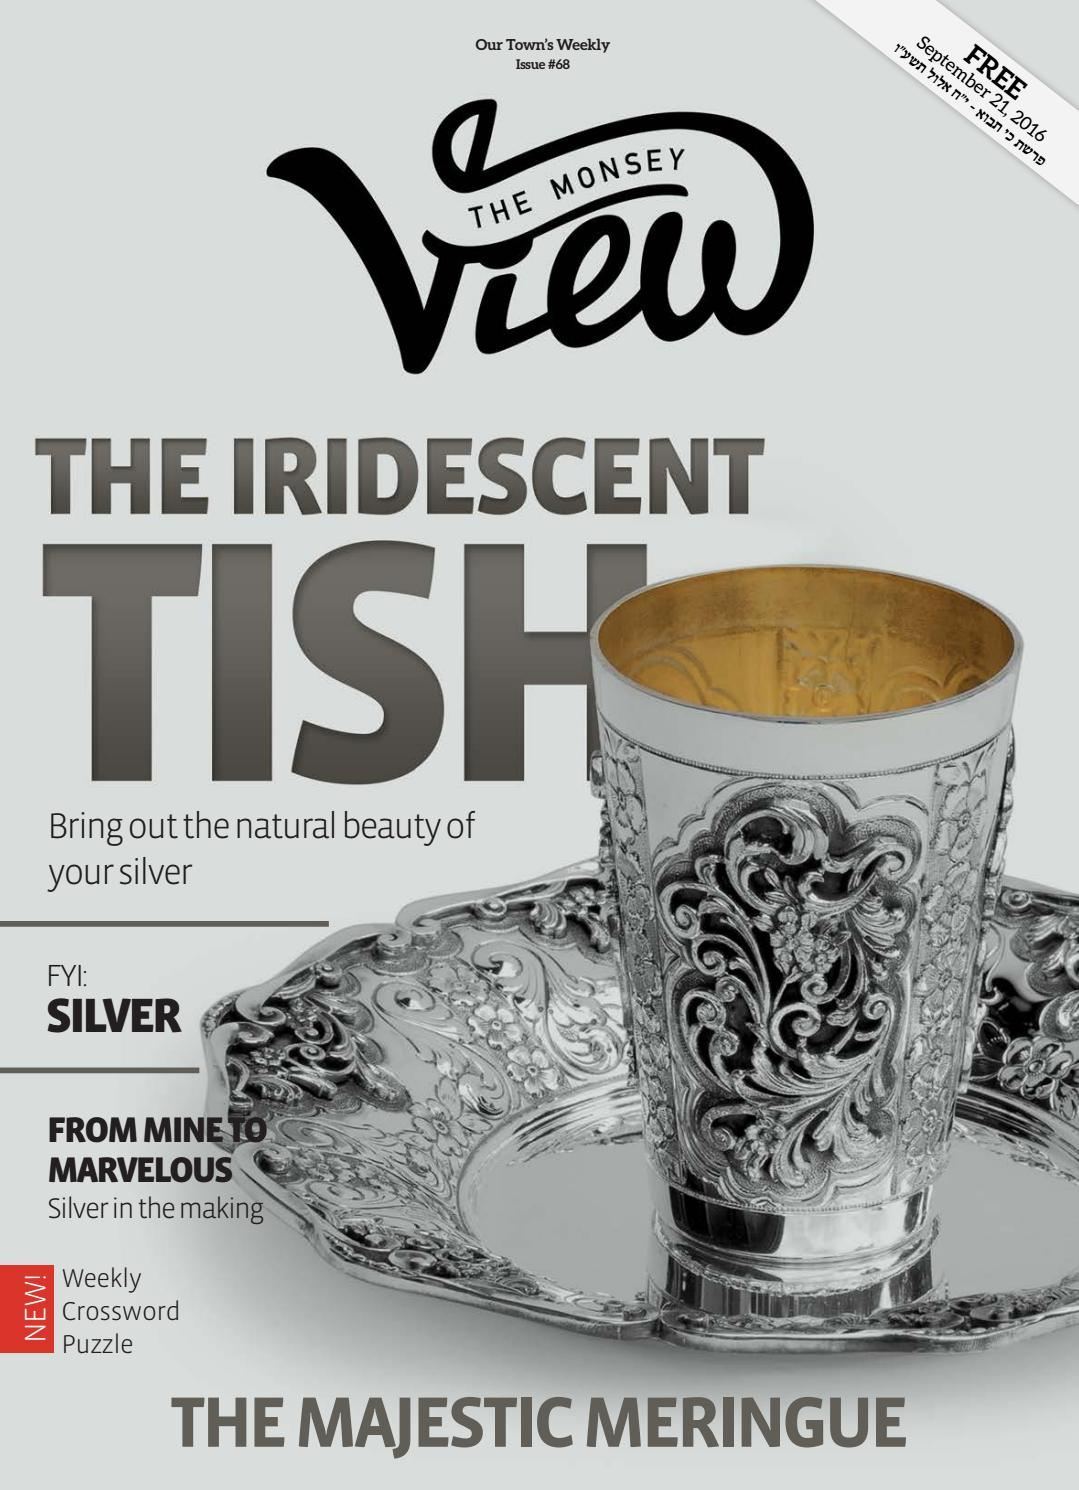 Issue 68 By The Monsey View Issuu